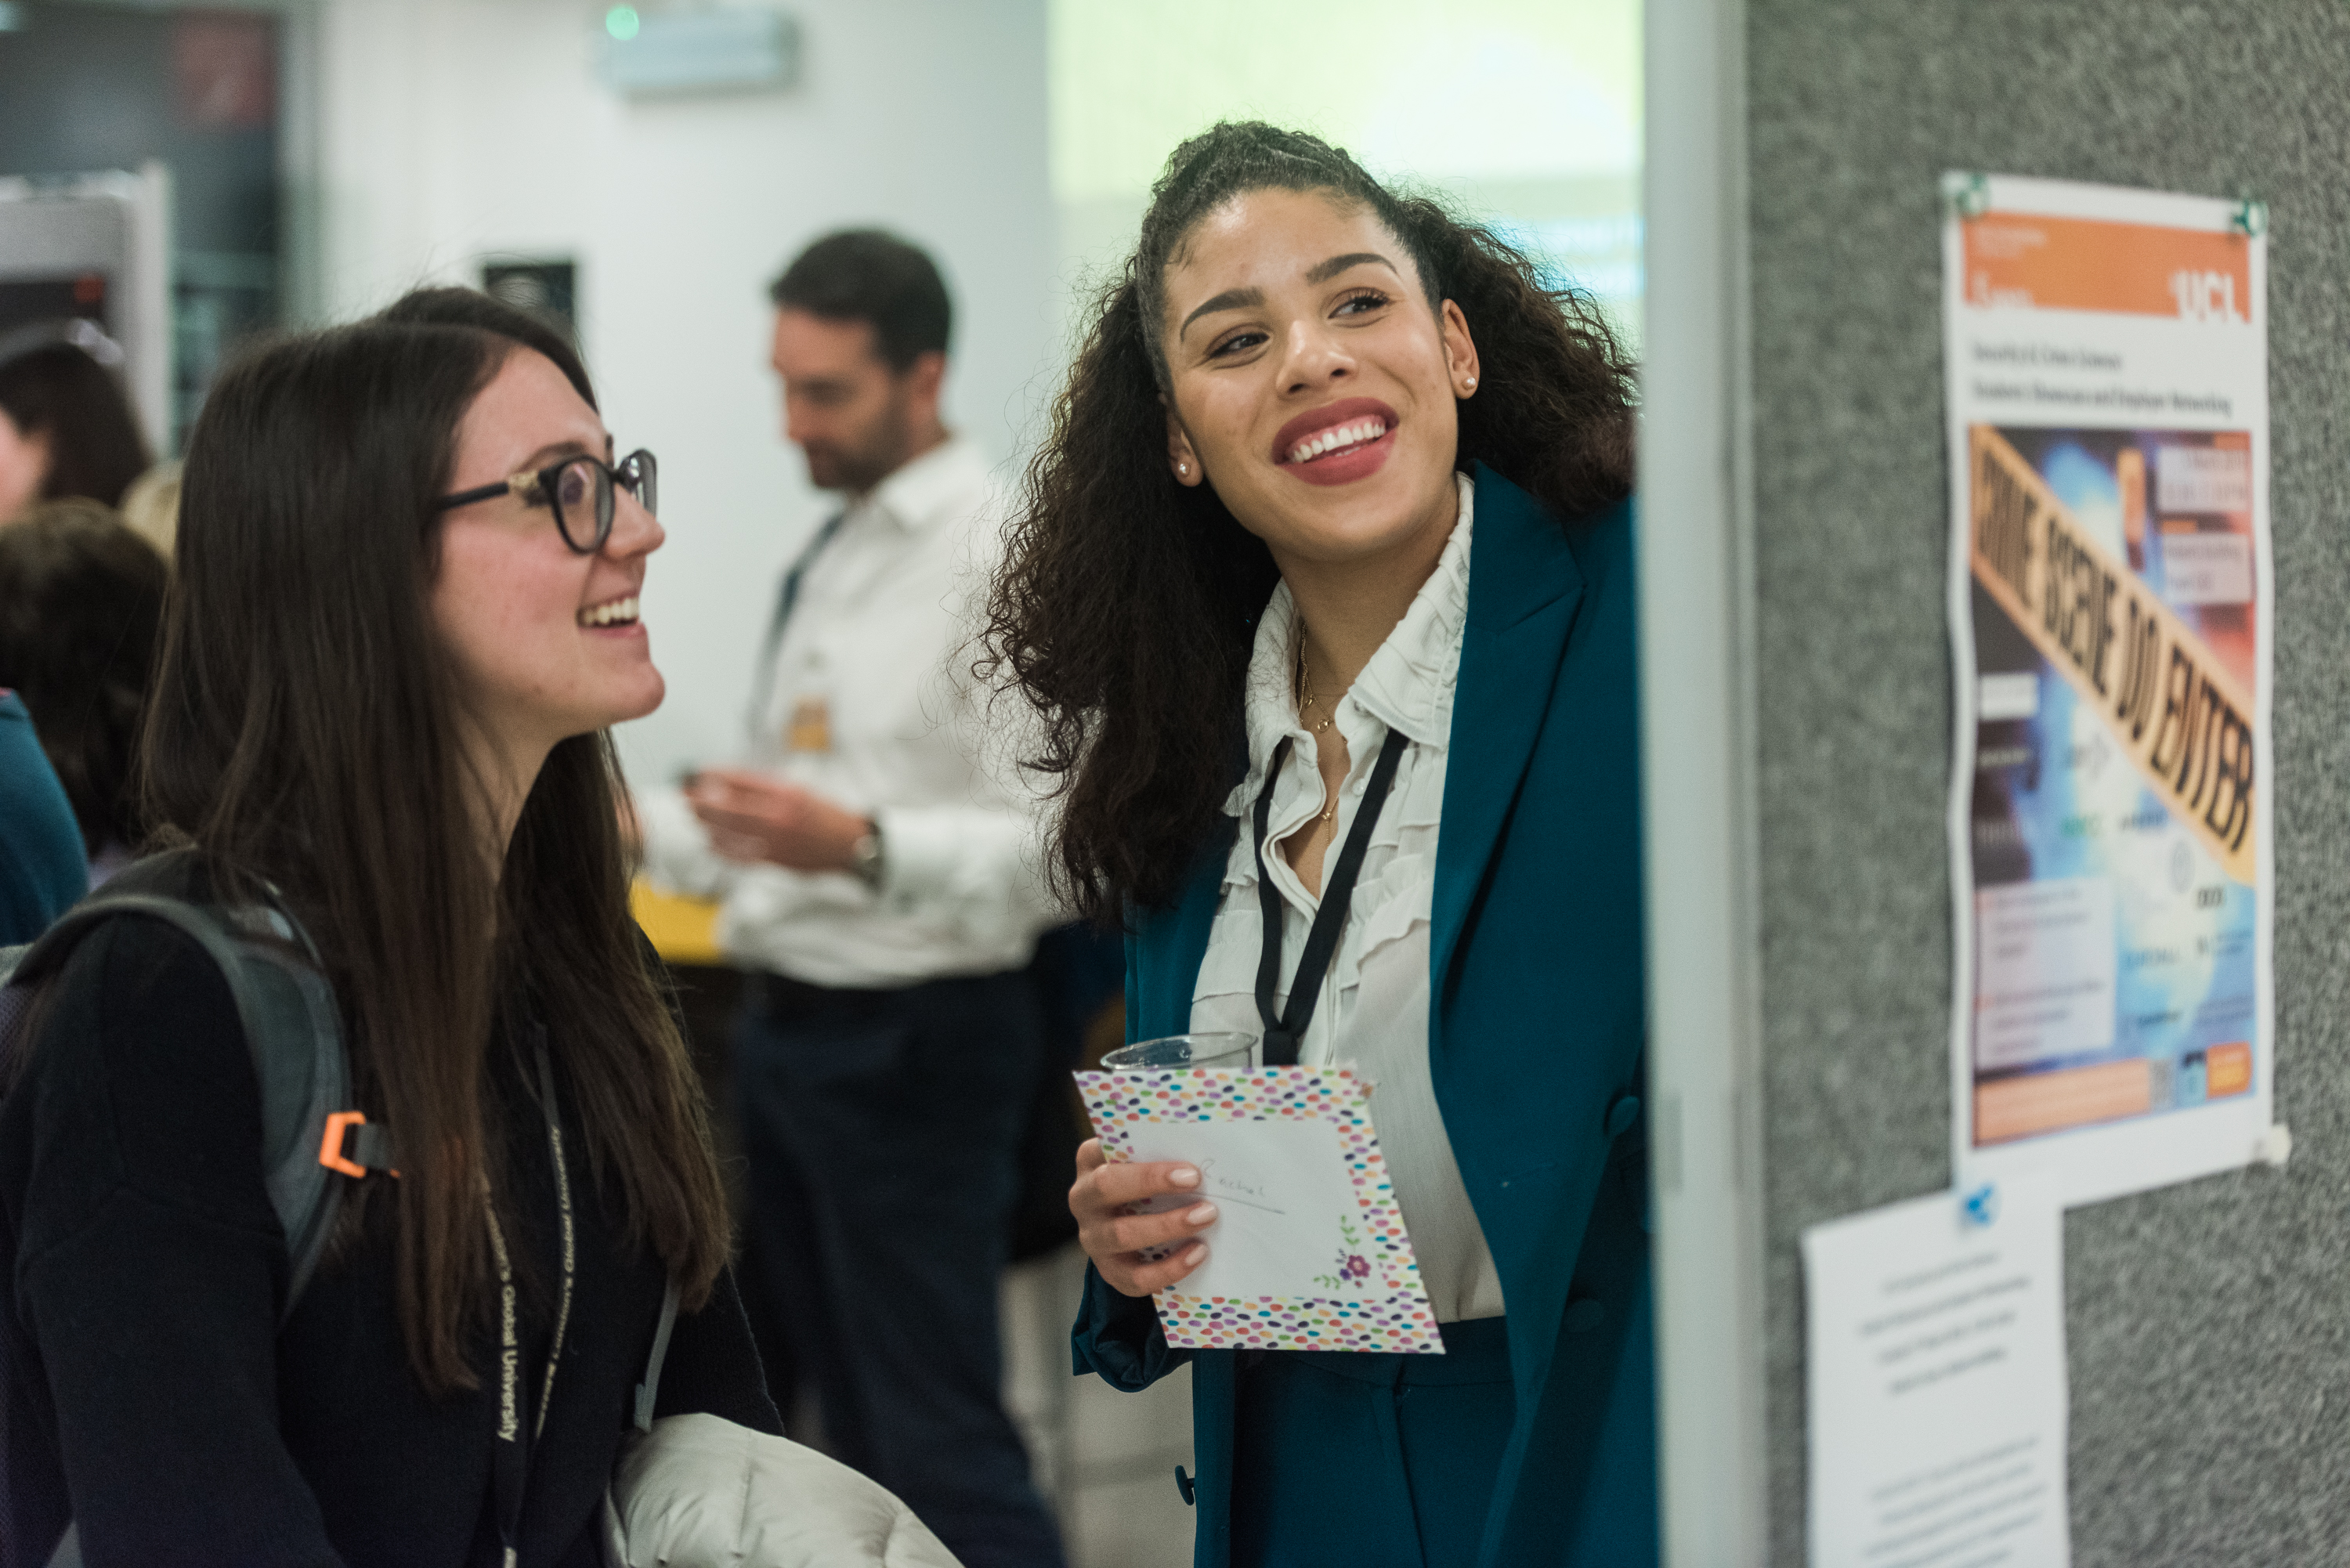 Students talking at poster event